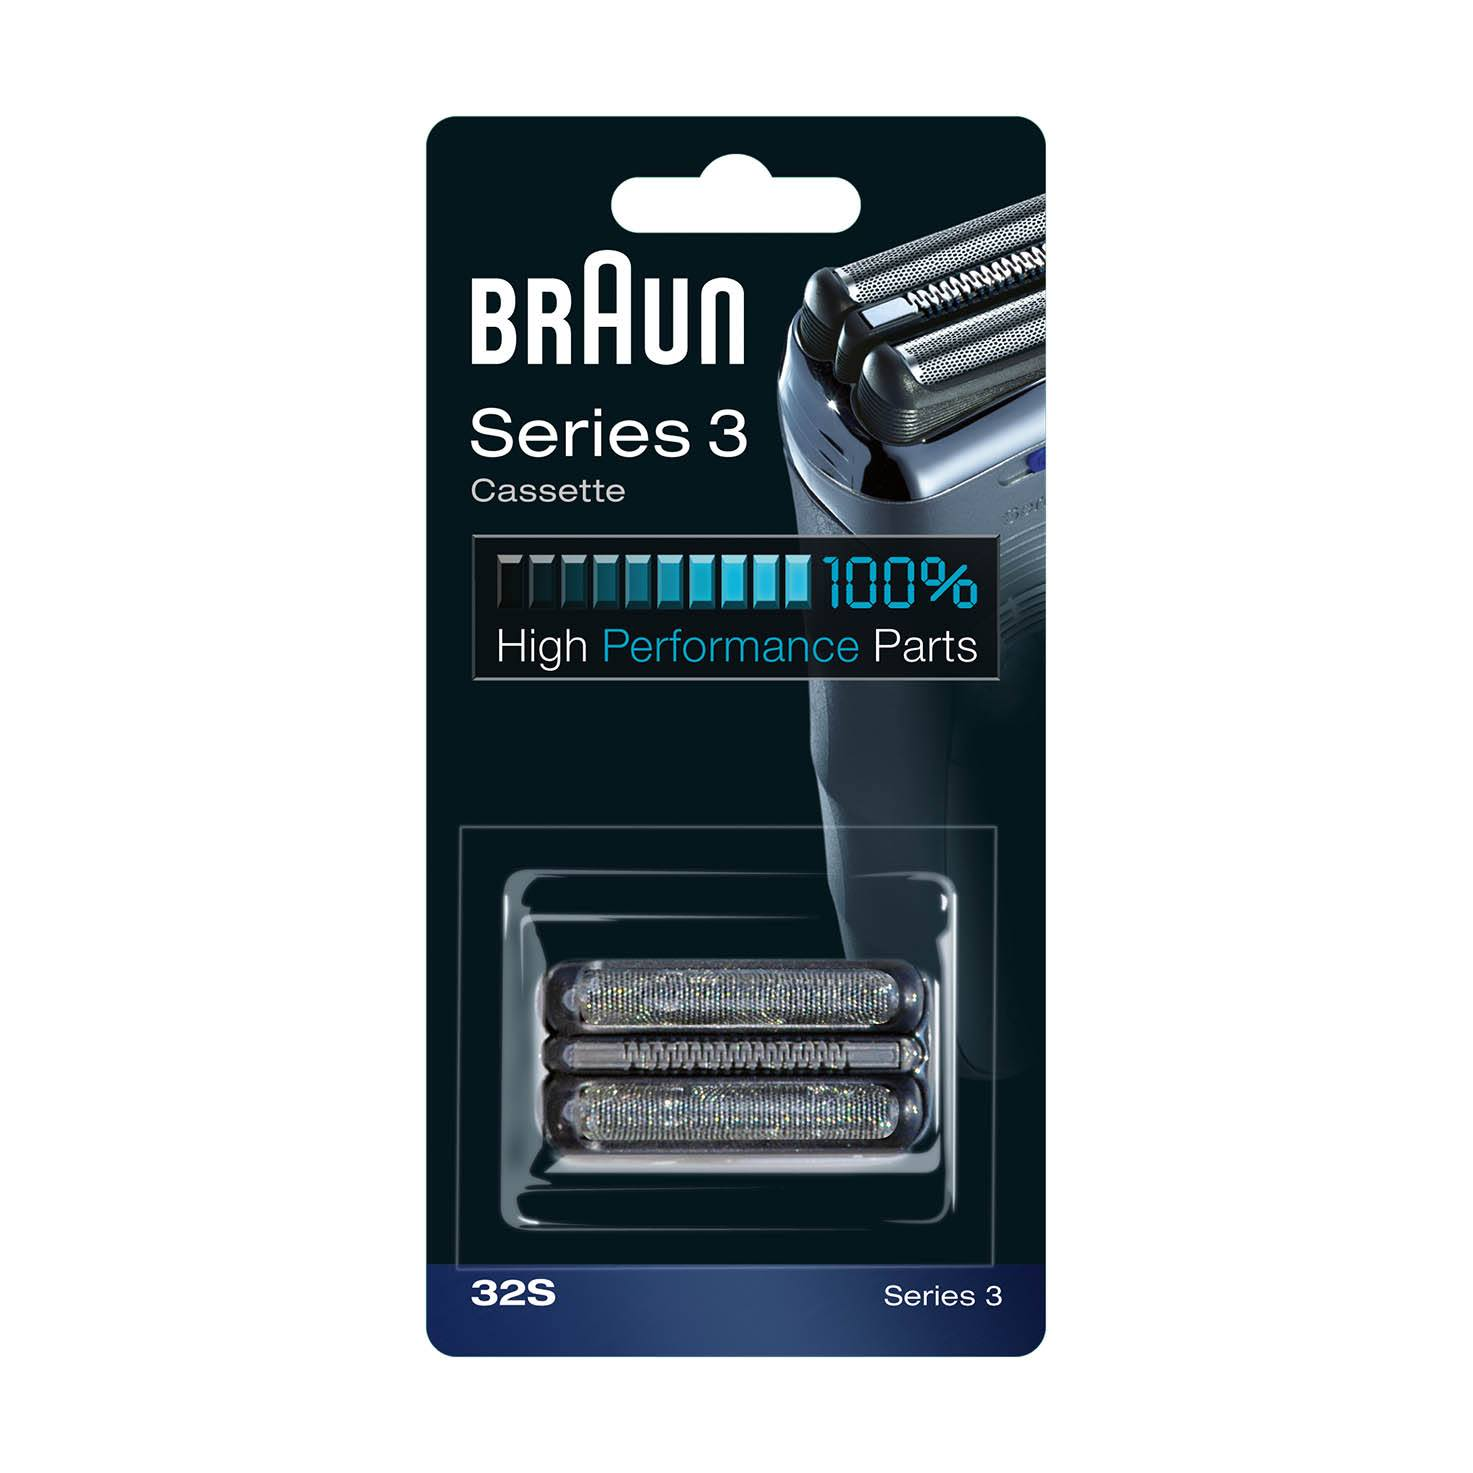 Braun Series 3 Replacement Head 32S, Silver, 1 Count